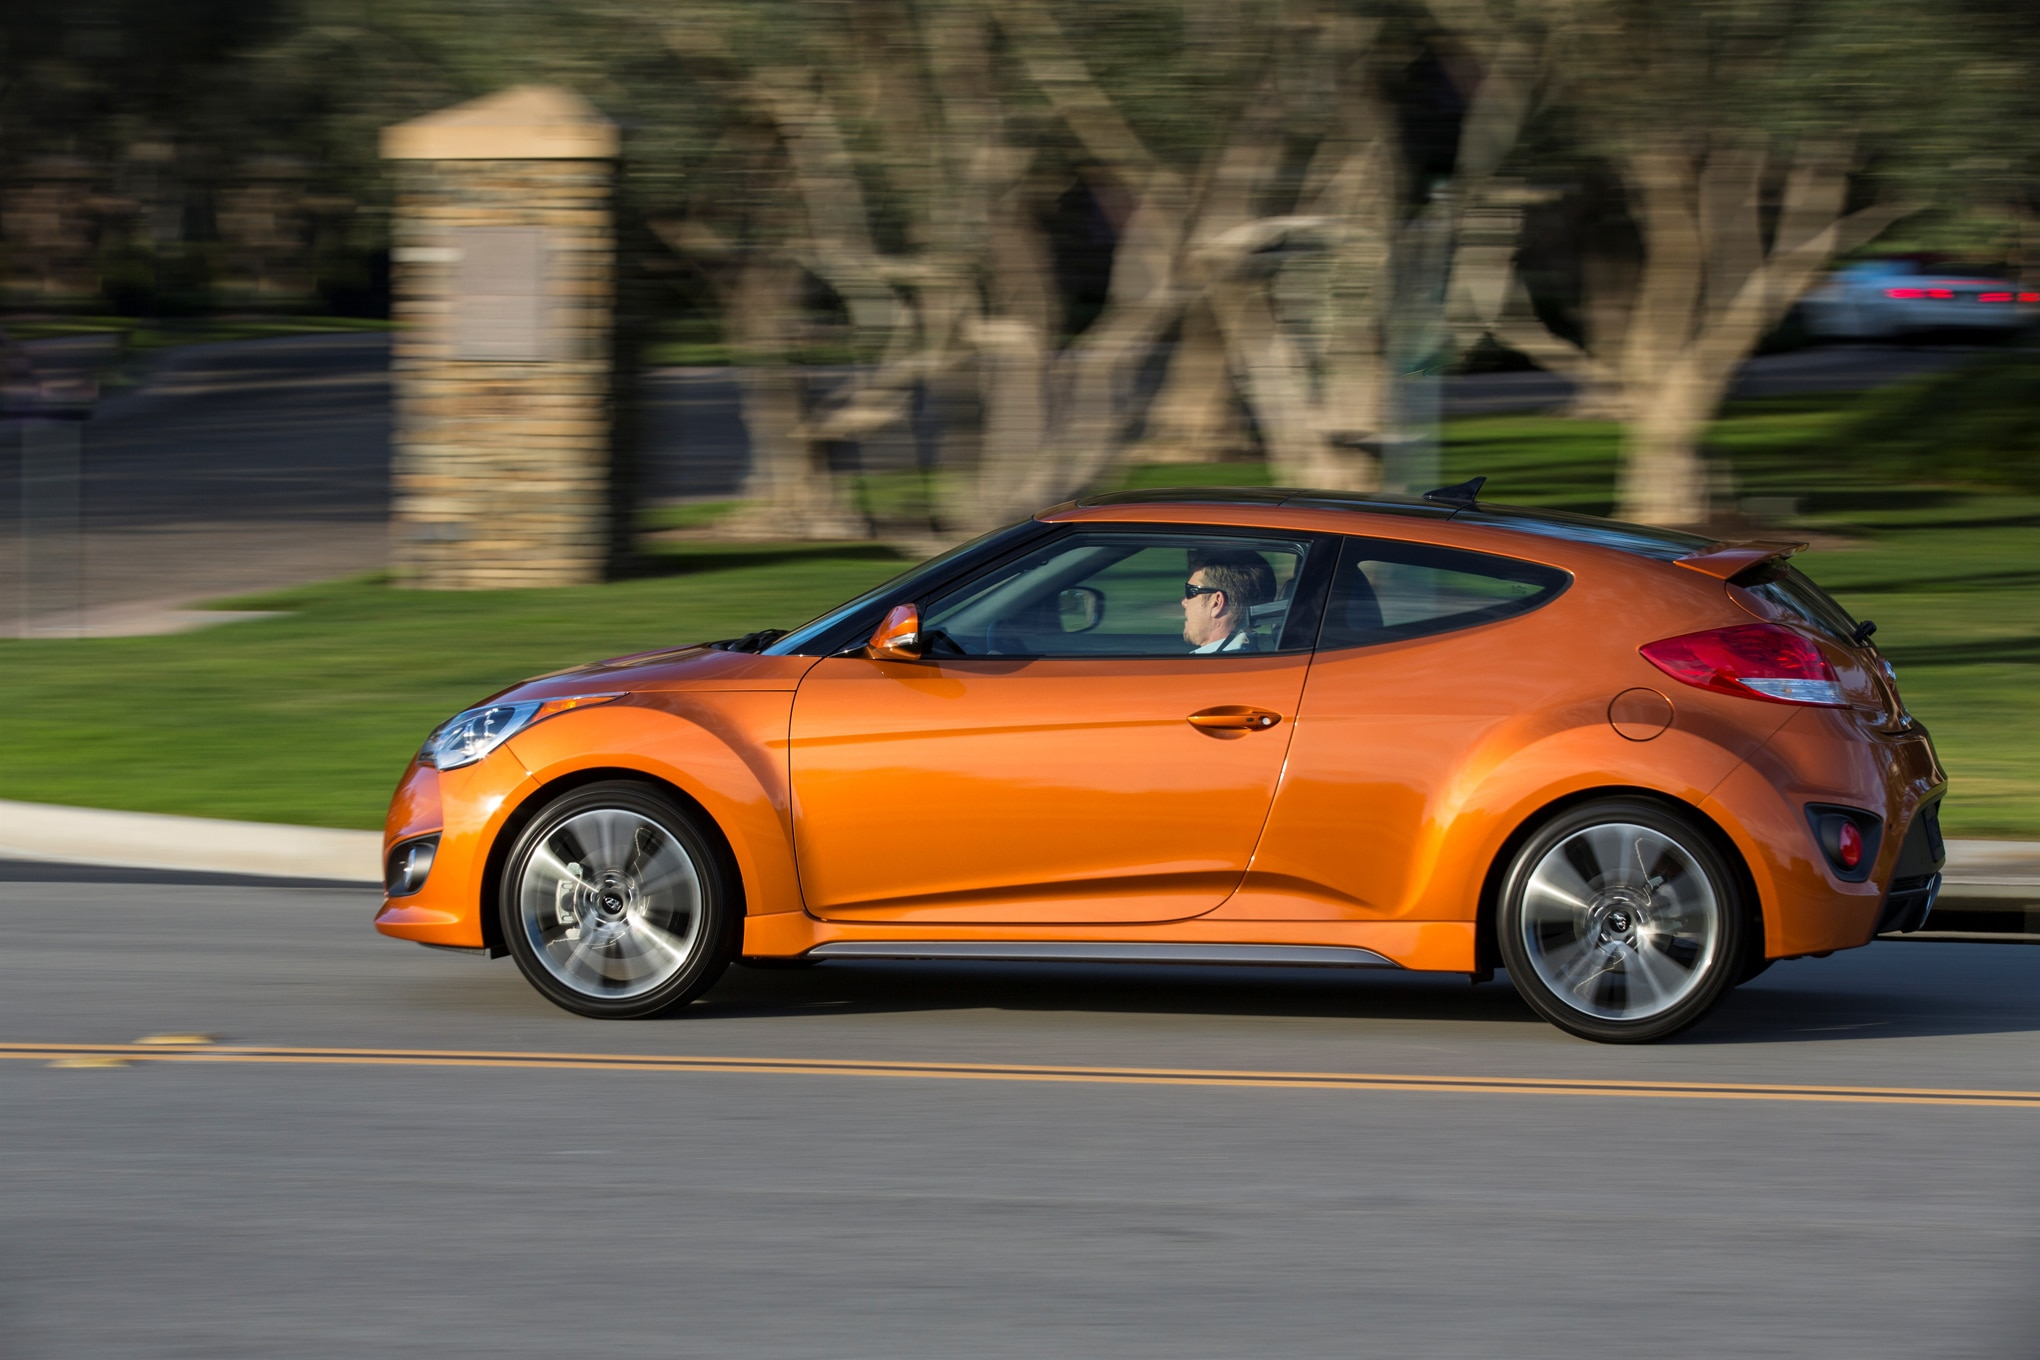 Worksheet. 2016 Hyundai Veloster Turbo Unveiled in Chicago with New 7Speed DCT